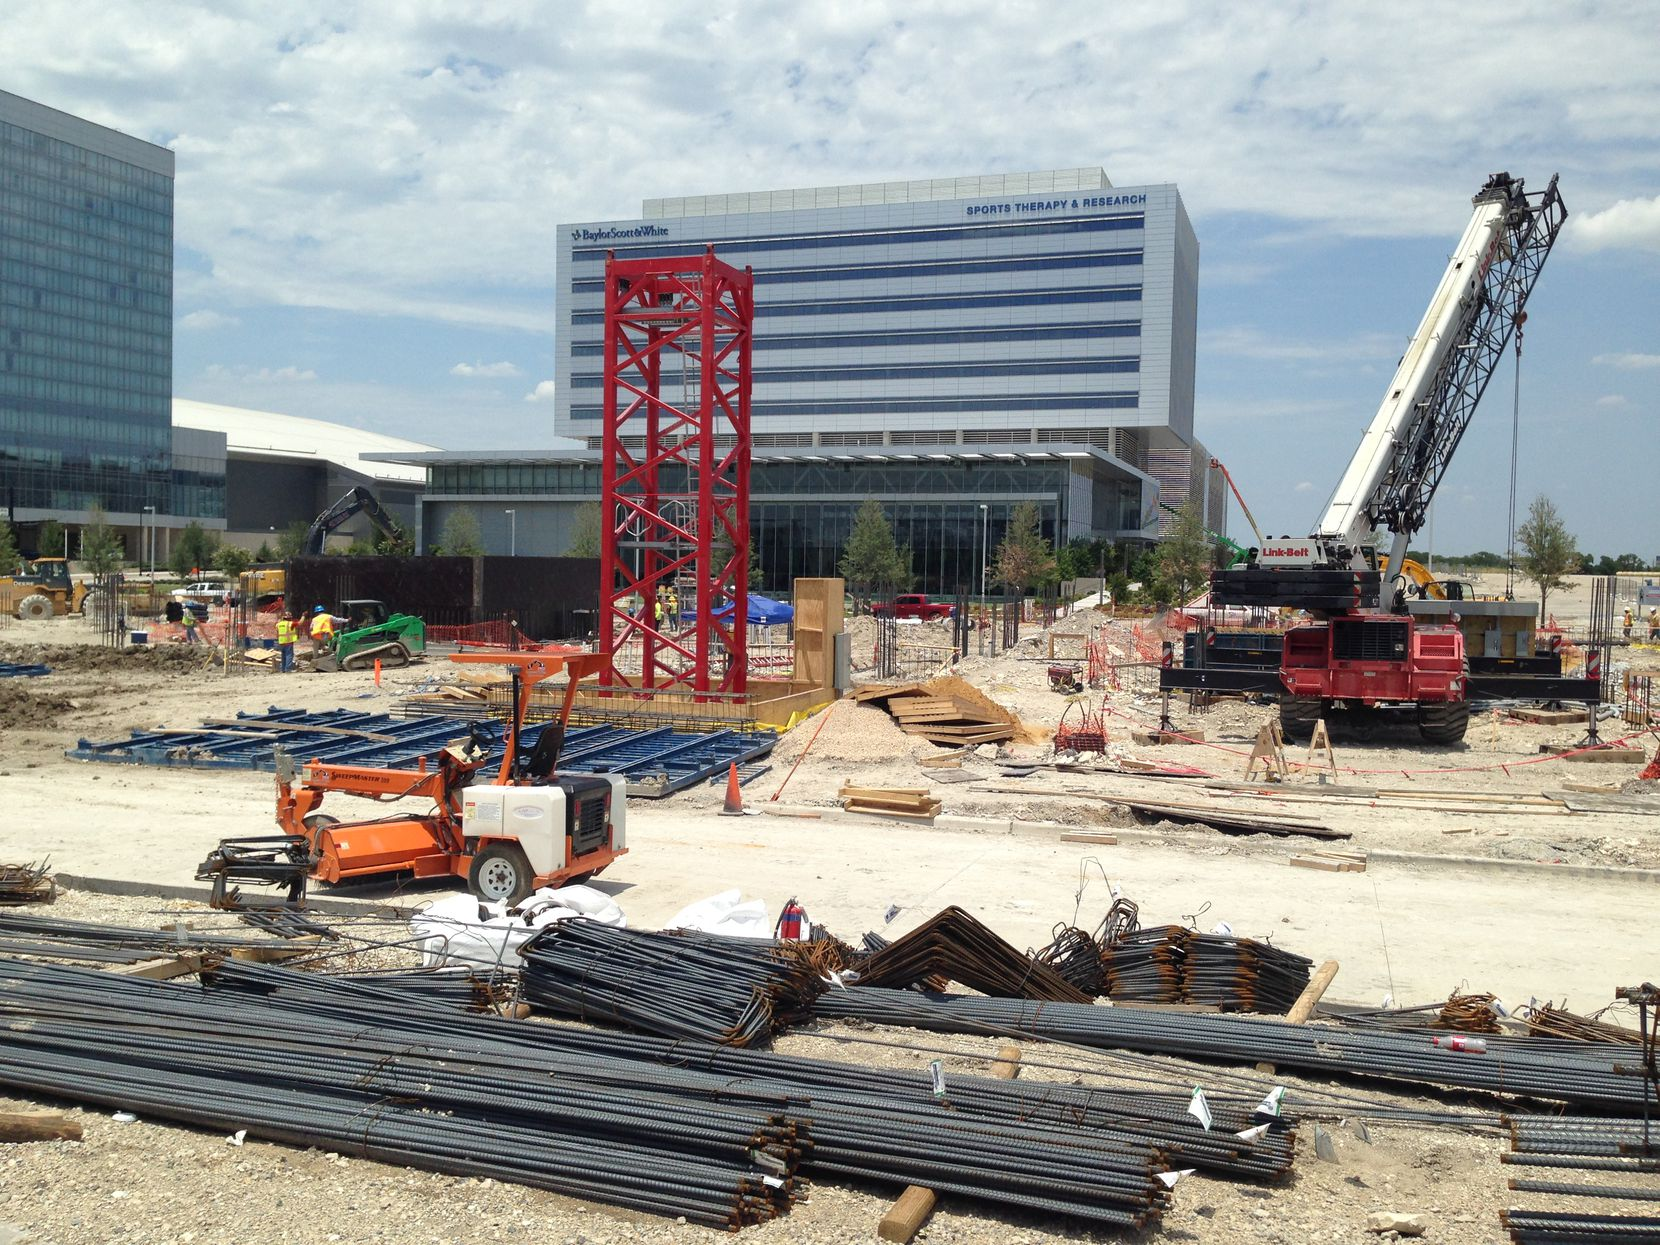 Construction has started on the Star House apartment tower at the Dallas Cowboys' complex in Frisco.